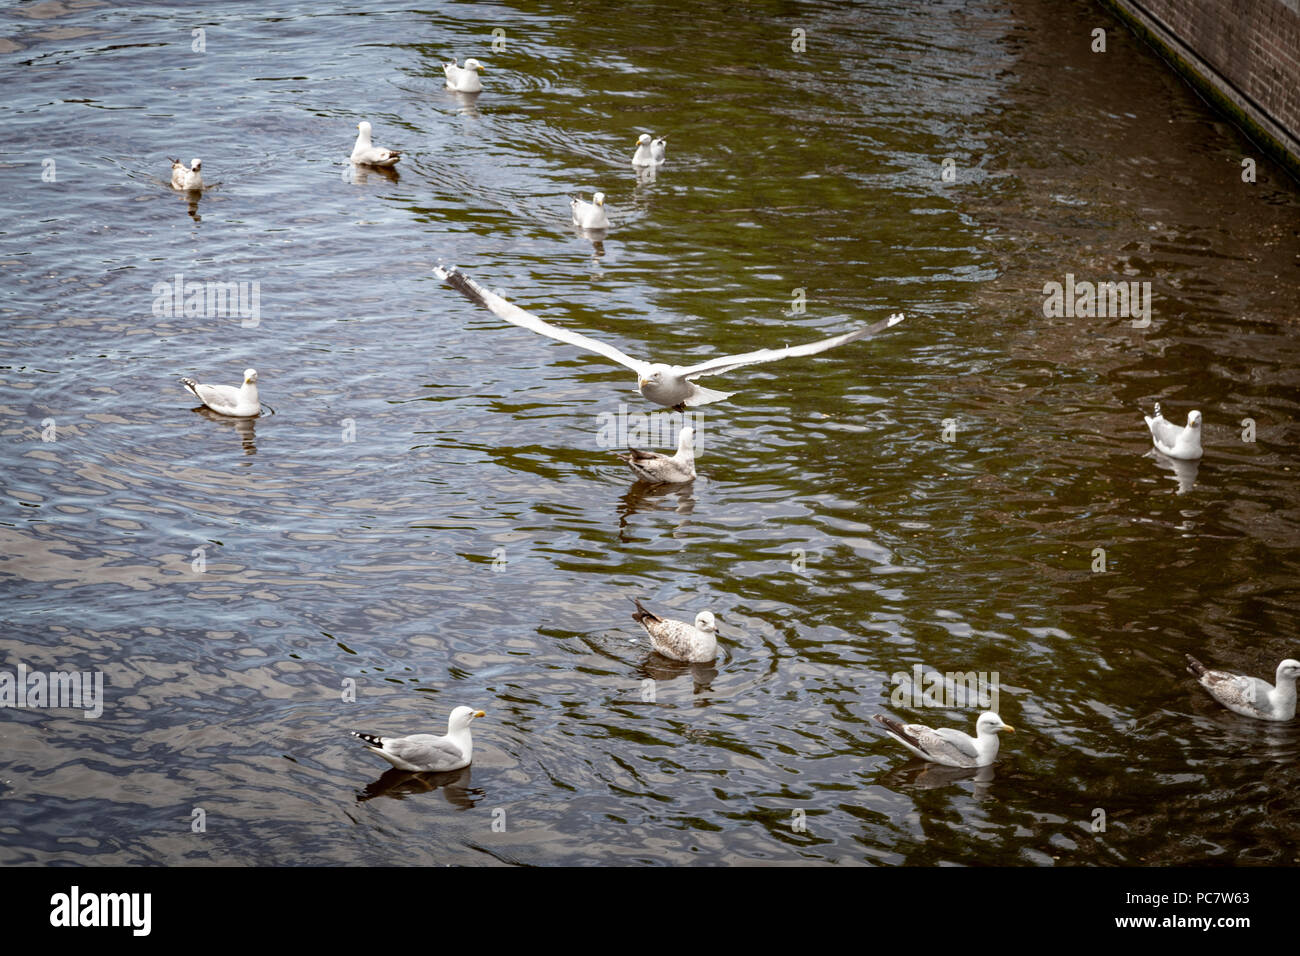 Birds in canals of Amsterdam, Netherlands - Stock Image